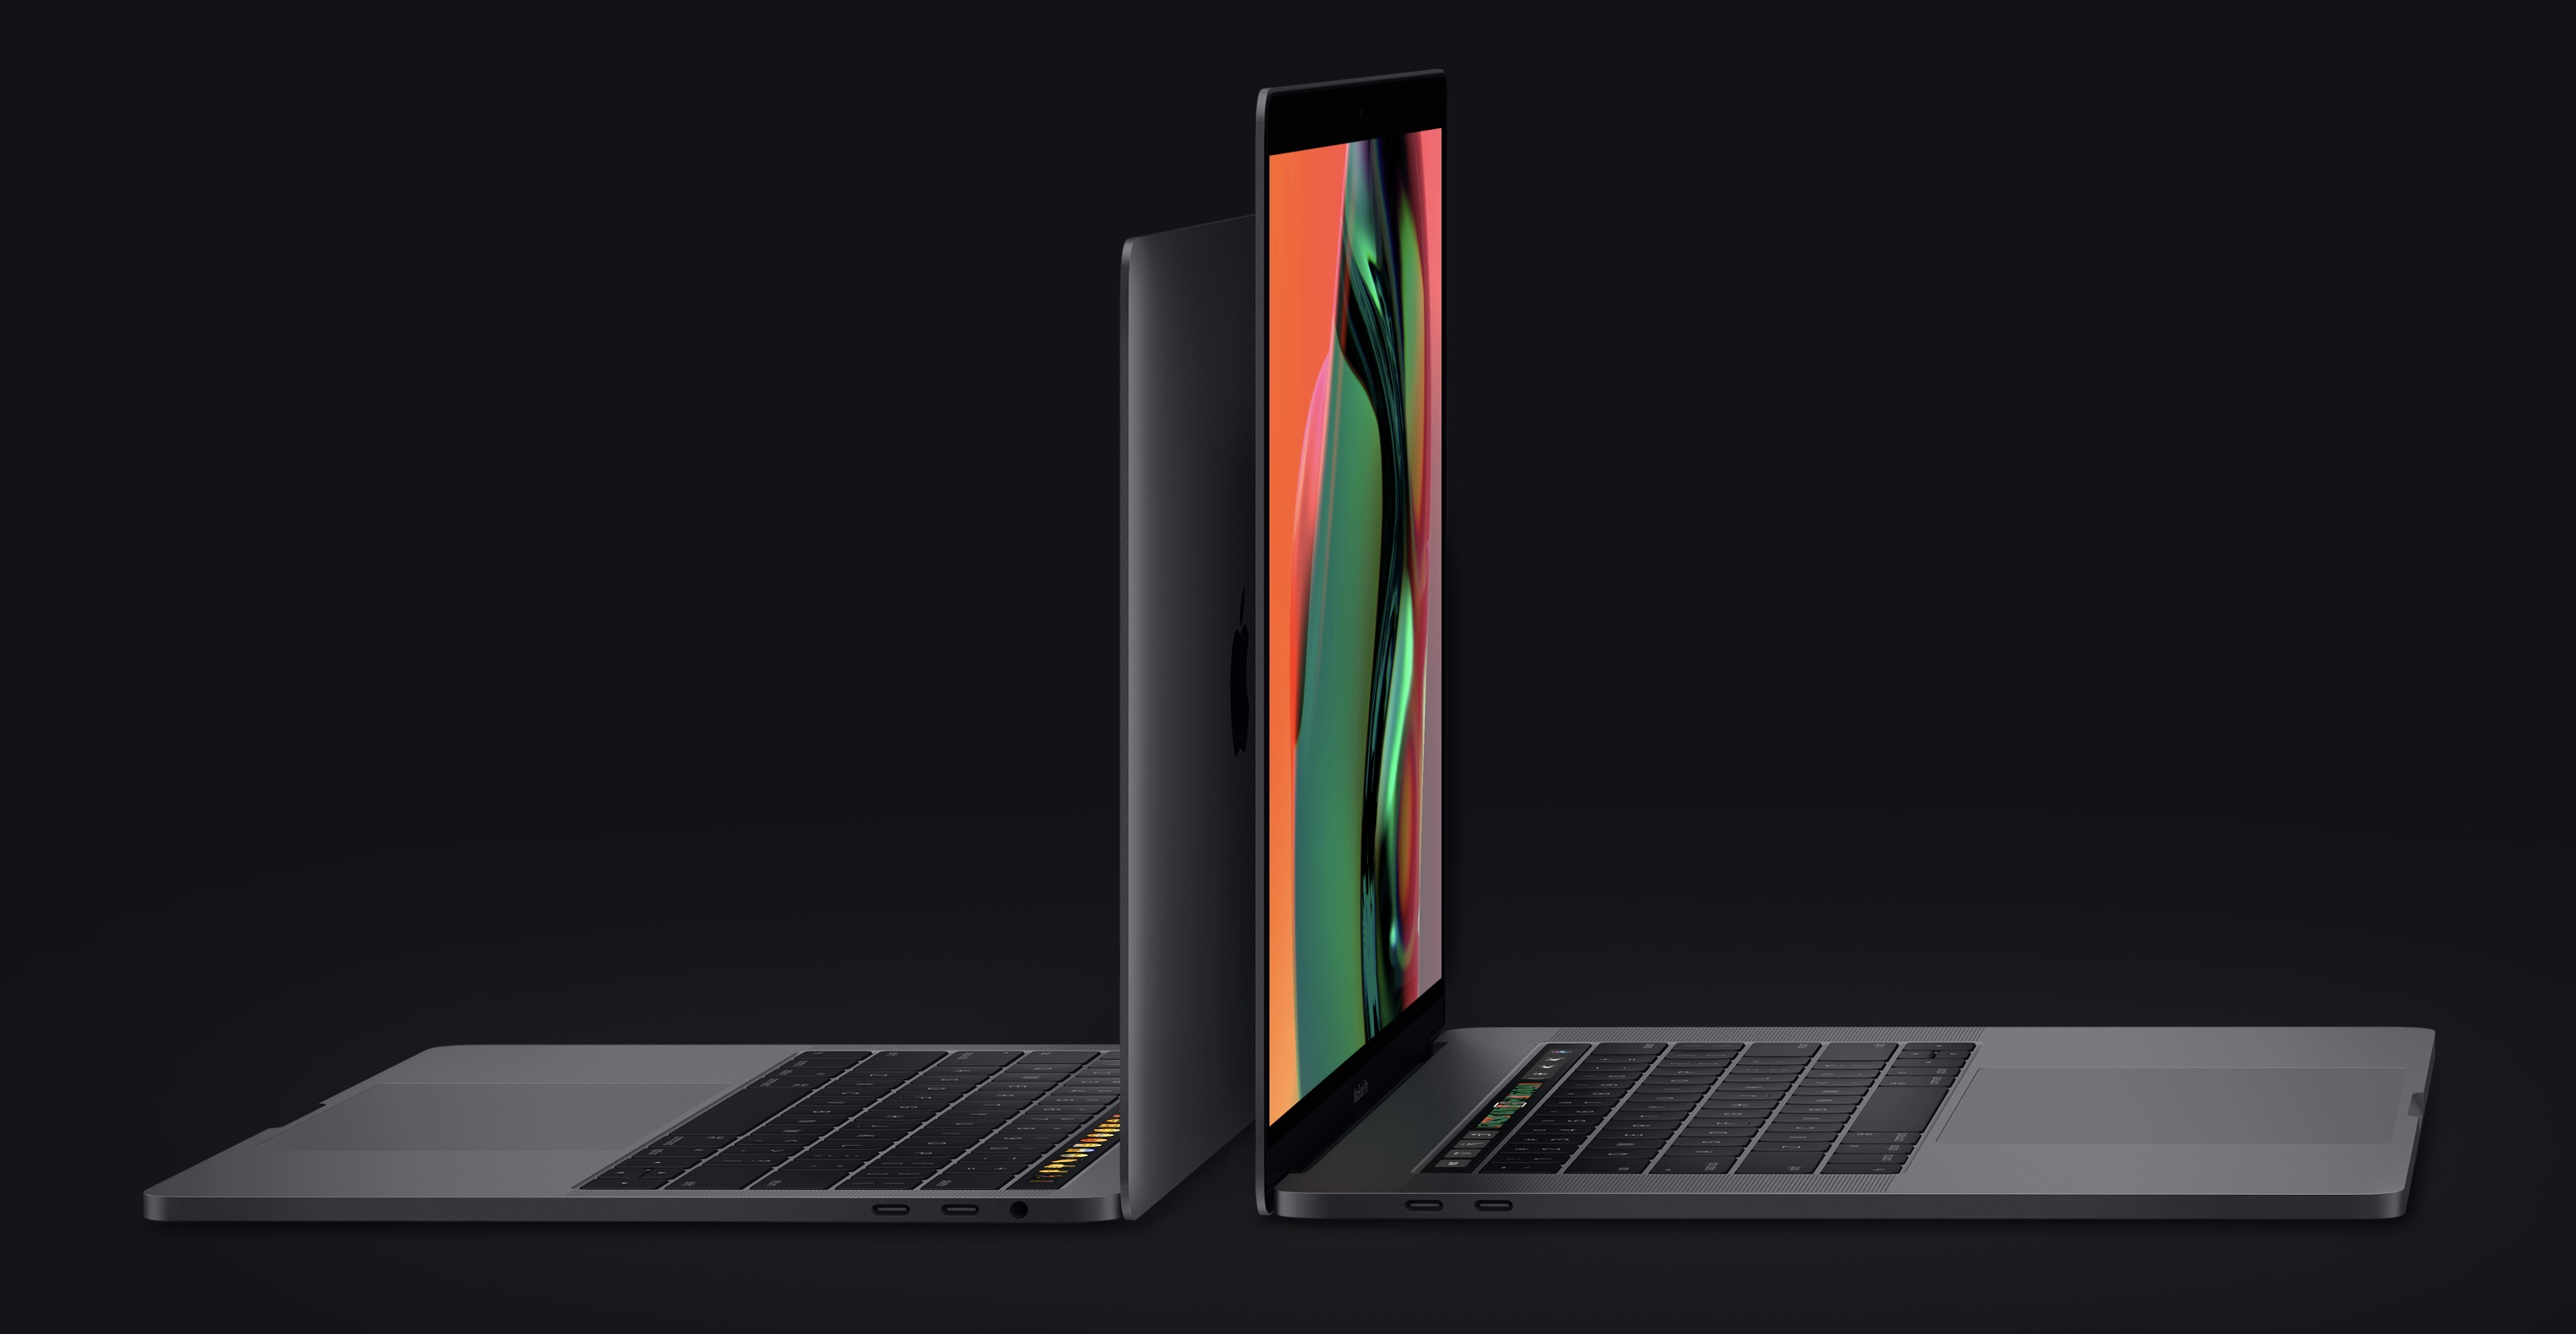 Here's how the 2019 MacBook Air and MacBook Pro compare